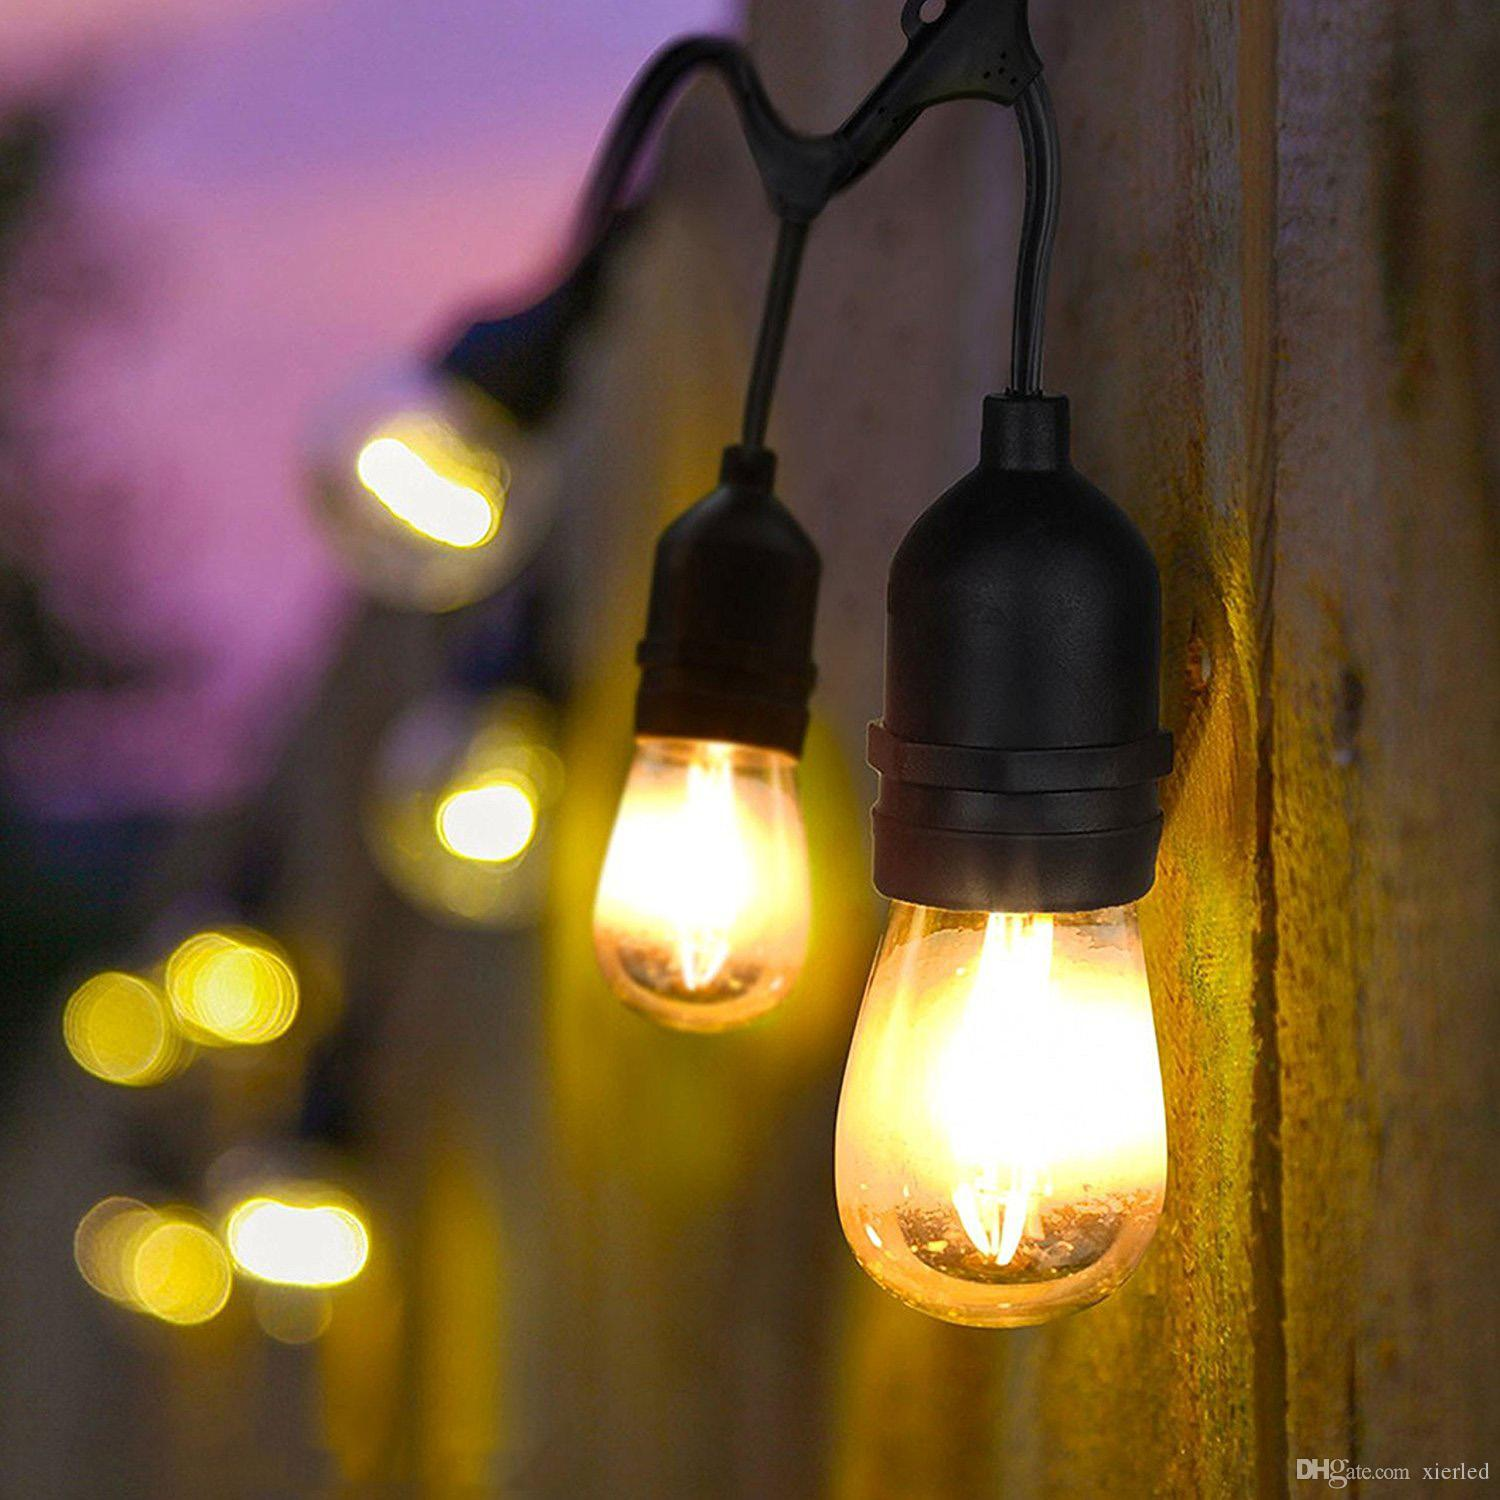 Edison Outdoor String Lights Outdoor string lights with edison vintage 15 s14 bulbs15 dropped outdoor string lights with edison vintage 15 s14 bulbs15 dropped socketsweatherproofperfect for patio cafe umbrella bistro yard flower string lights workwithnaturefo